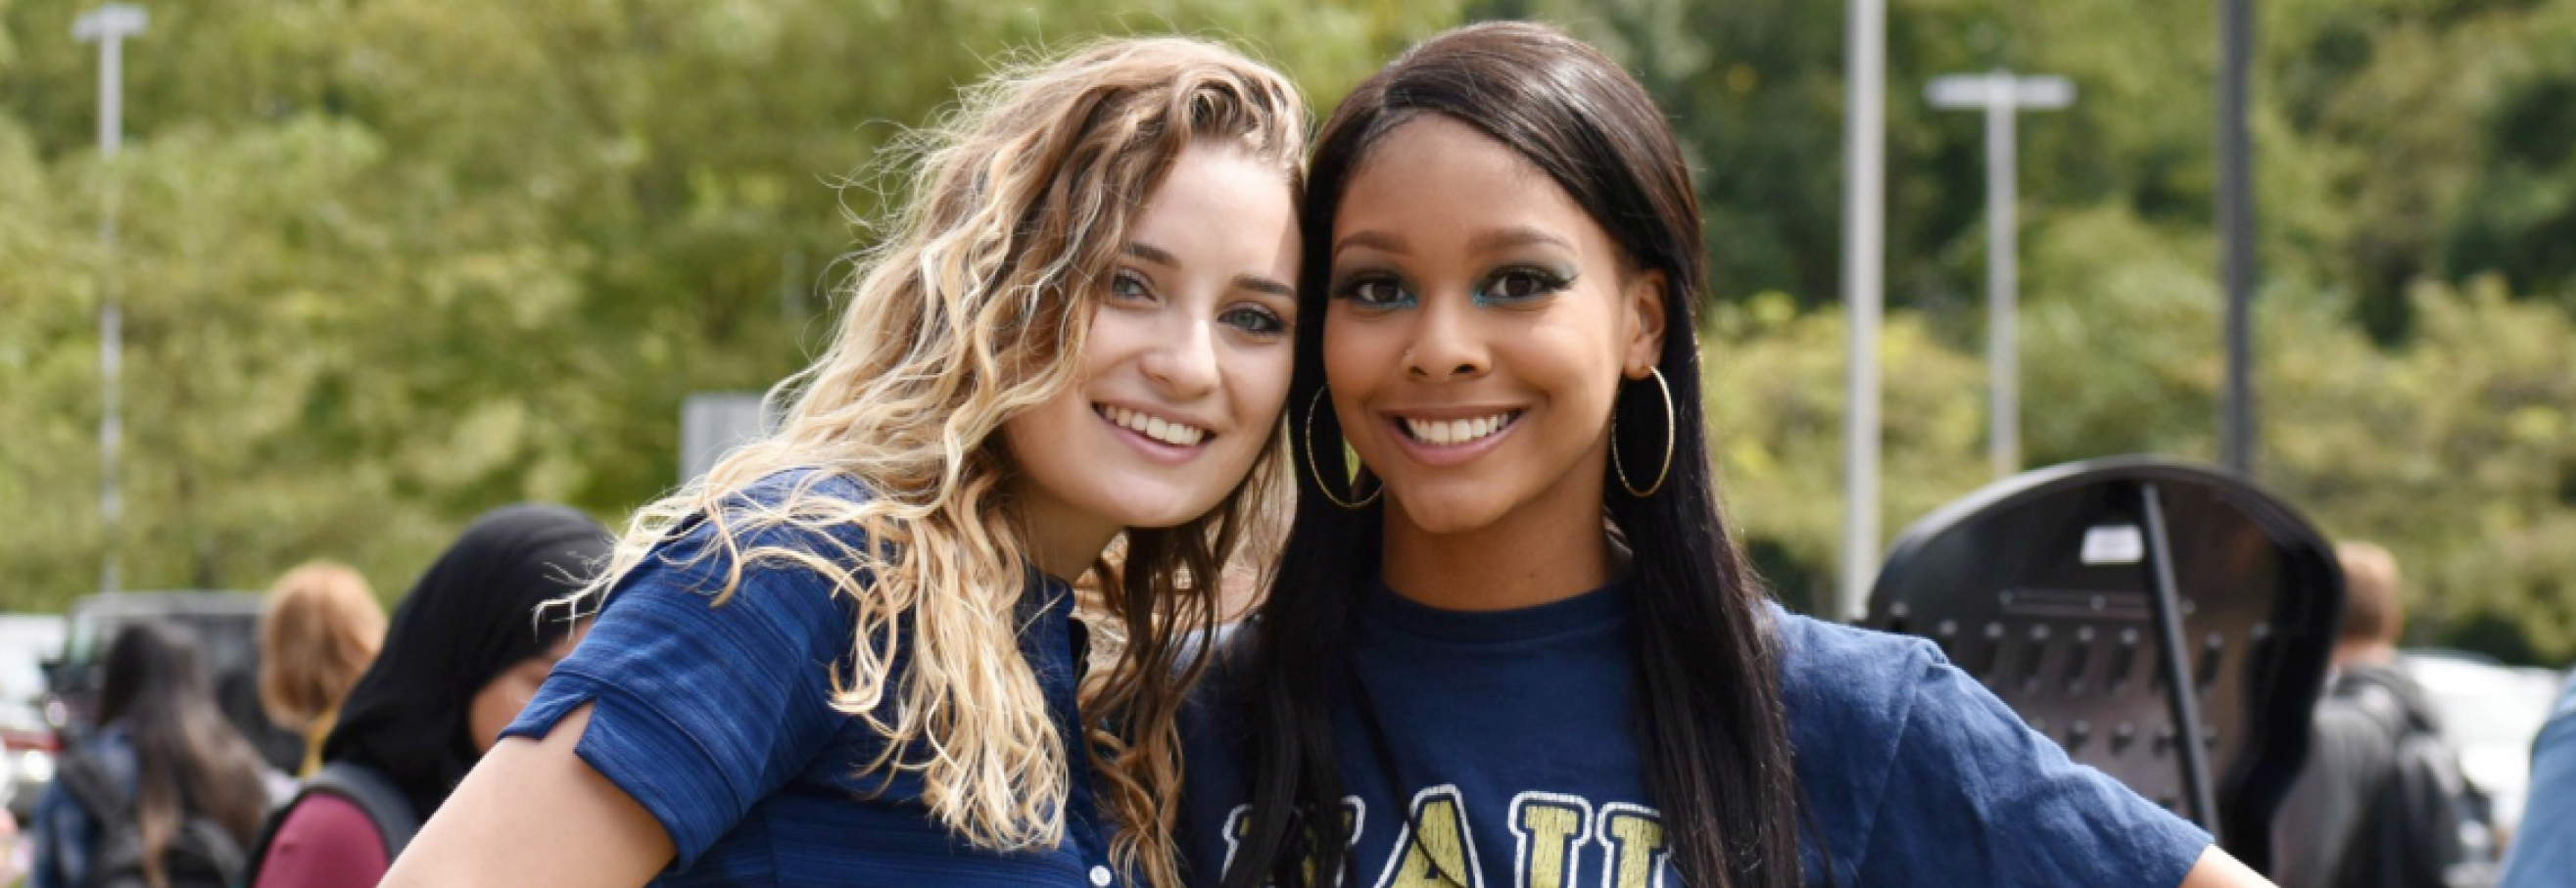 Two students in Pitt gear smiling for camera